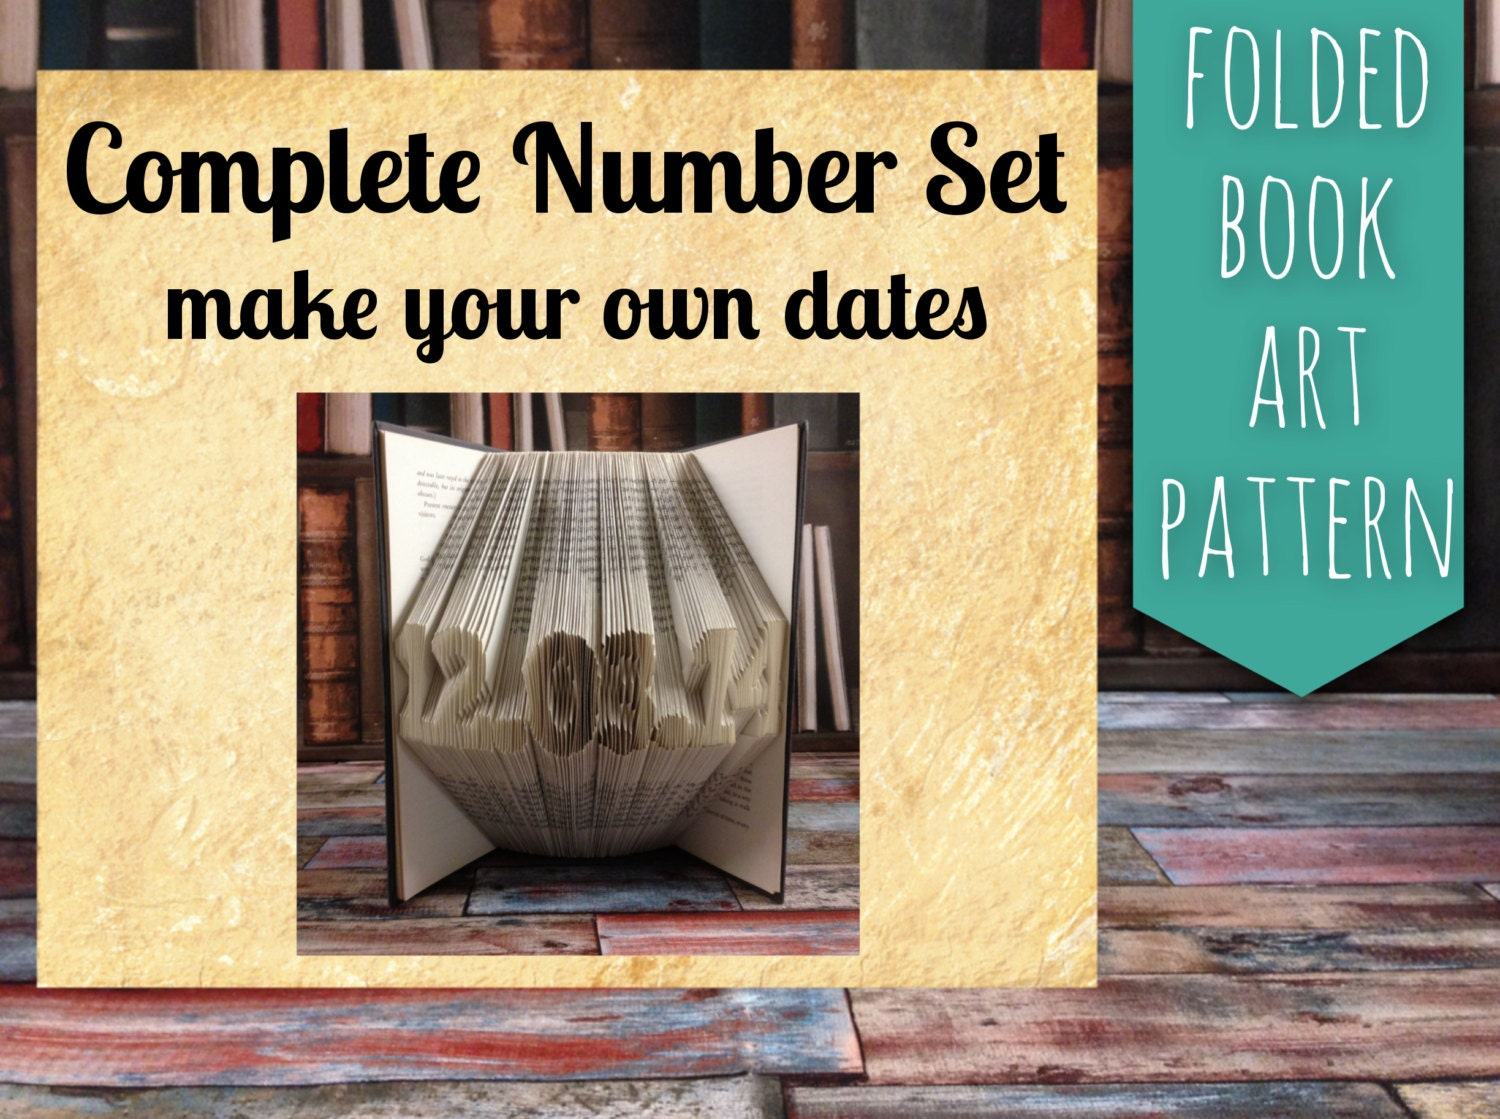 Full Date Number pack Pattern & tutorial, gift, decoration ... - photo#35